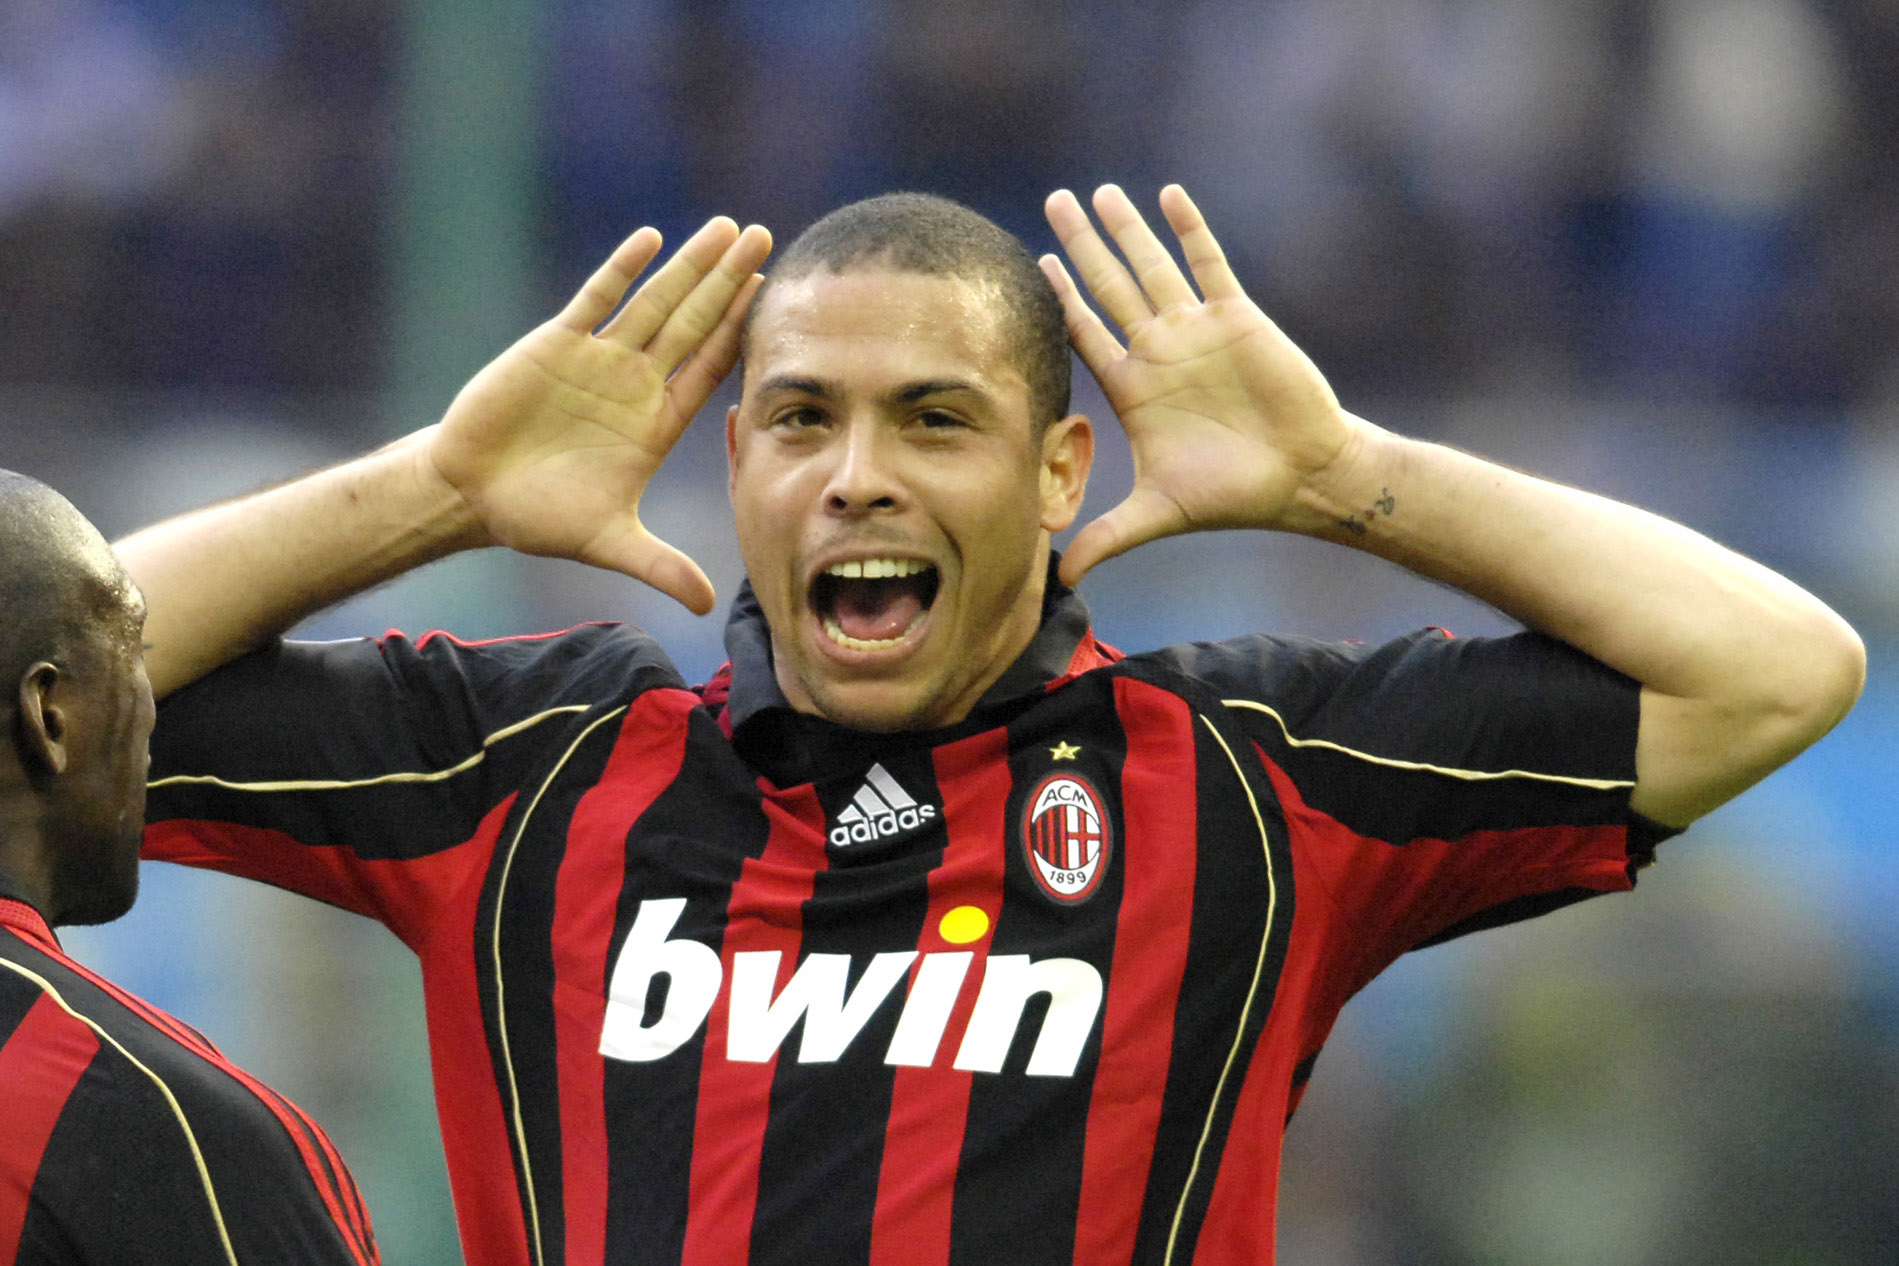 """Ronaldo of AC Milan celebrates during the Serie A 2006/2007 28th round match between Inter of Milan and Milan played at the """"Giuseppe Meazza"""" in Milan."""